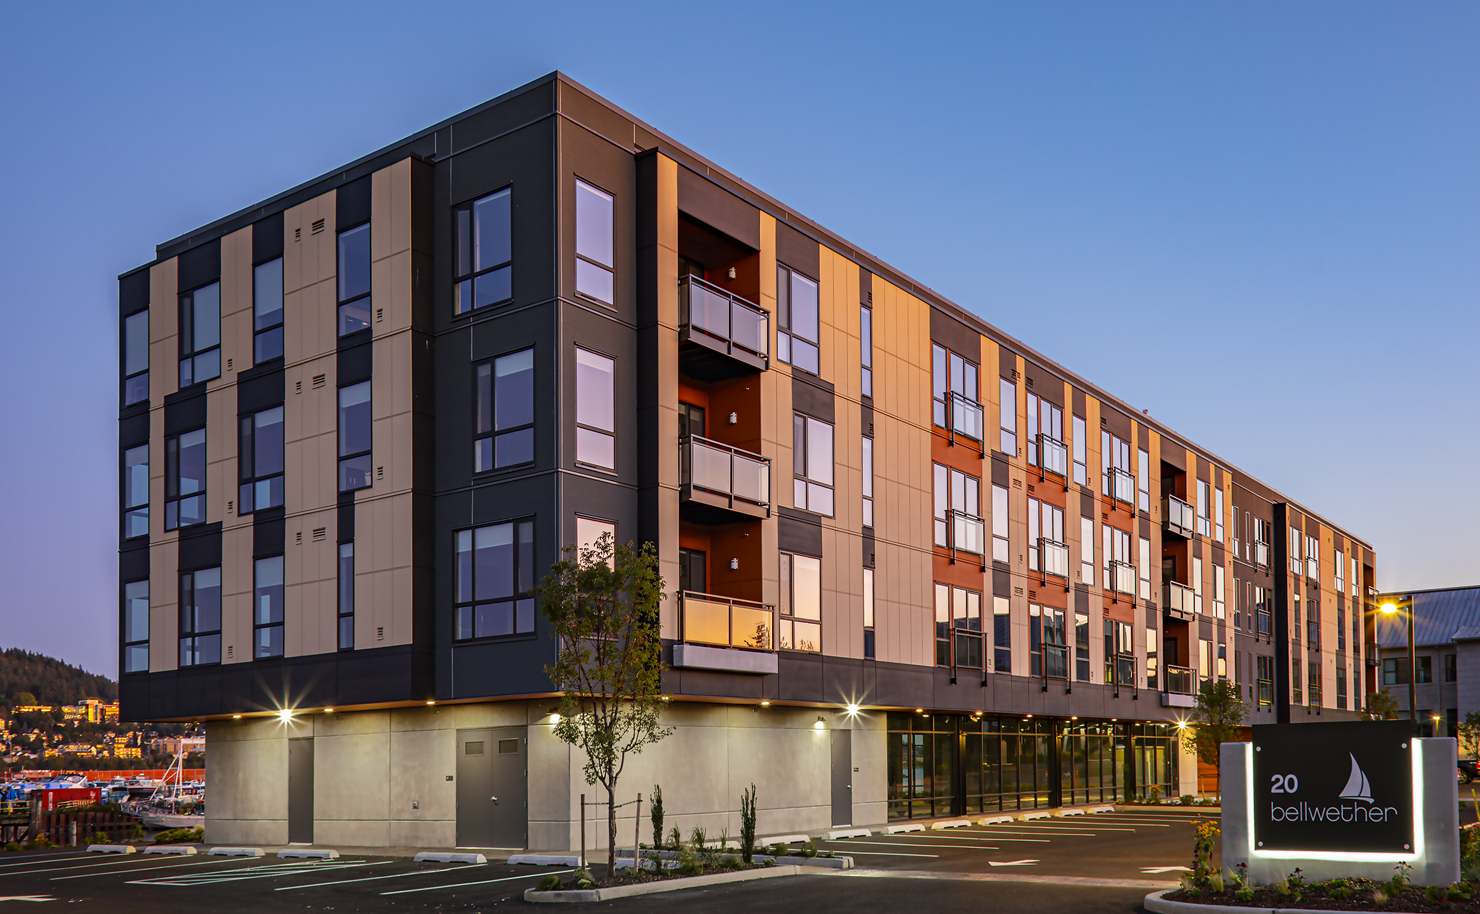 Bellwether Apartments